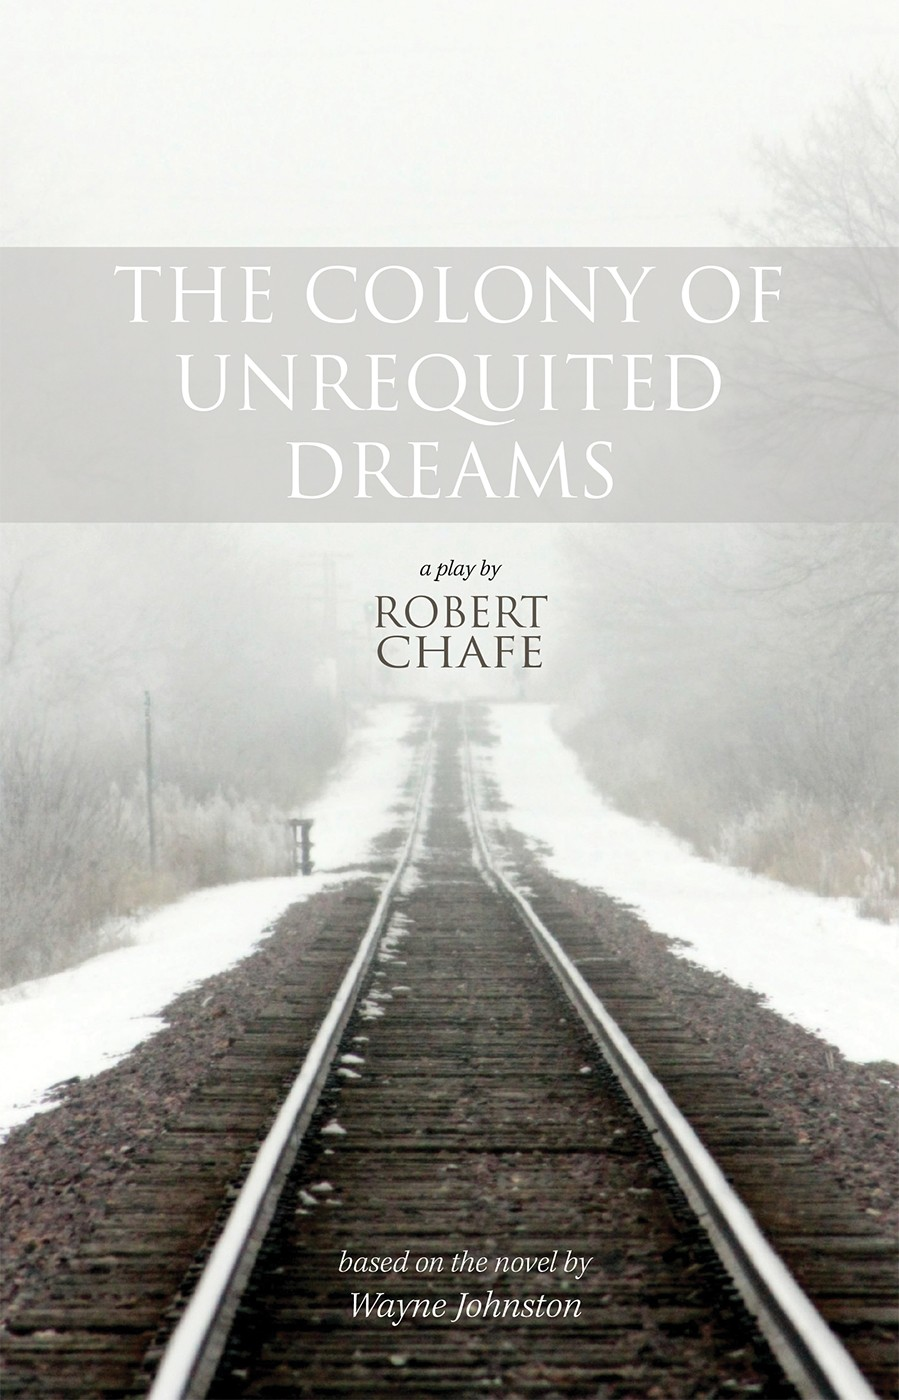 The Colony of Unrequited Dreams (print)